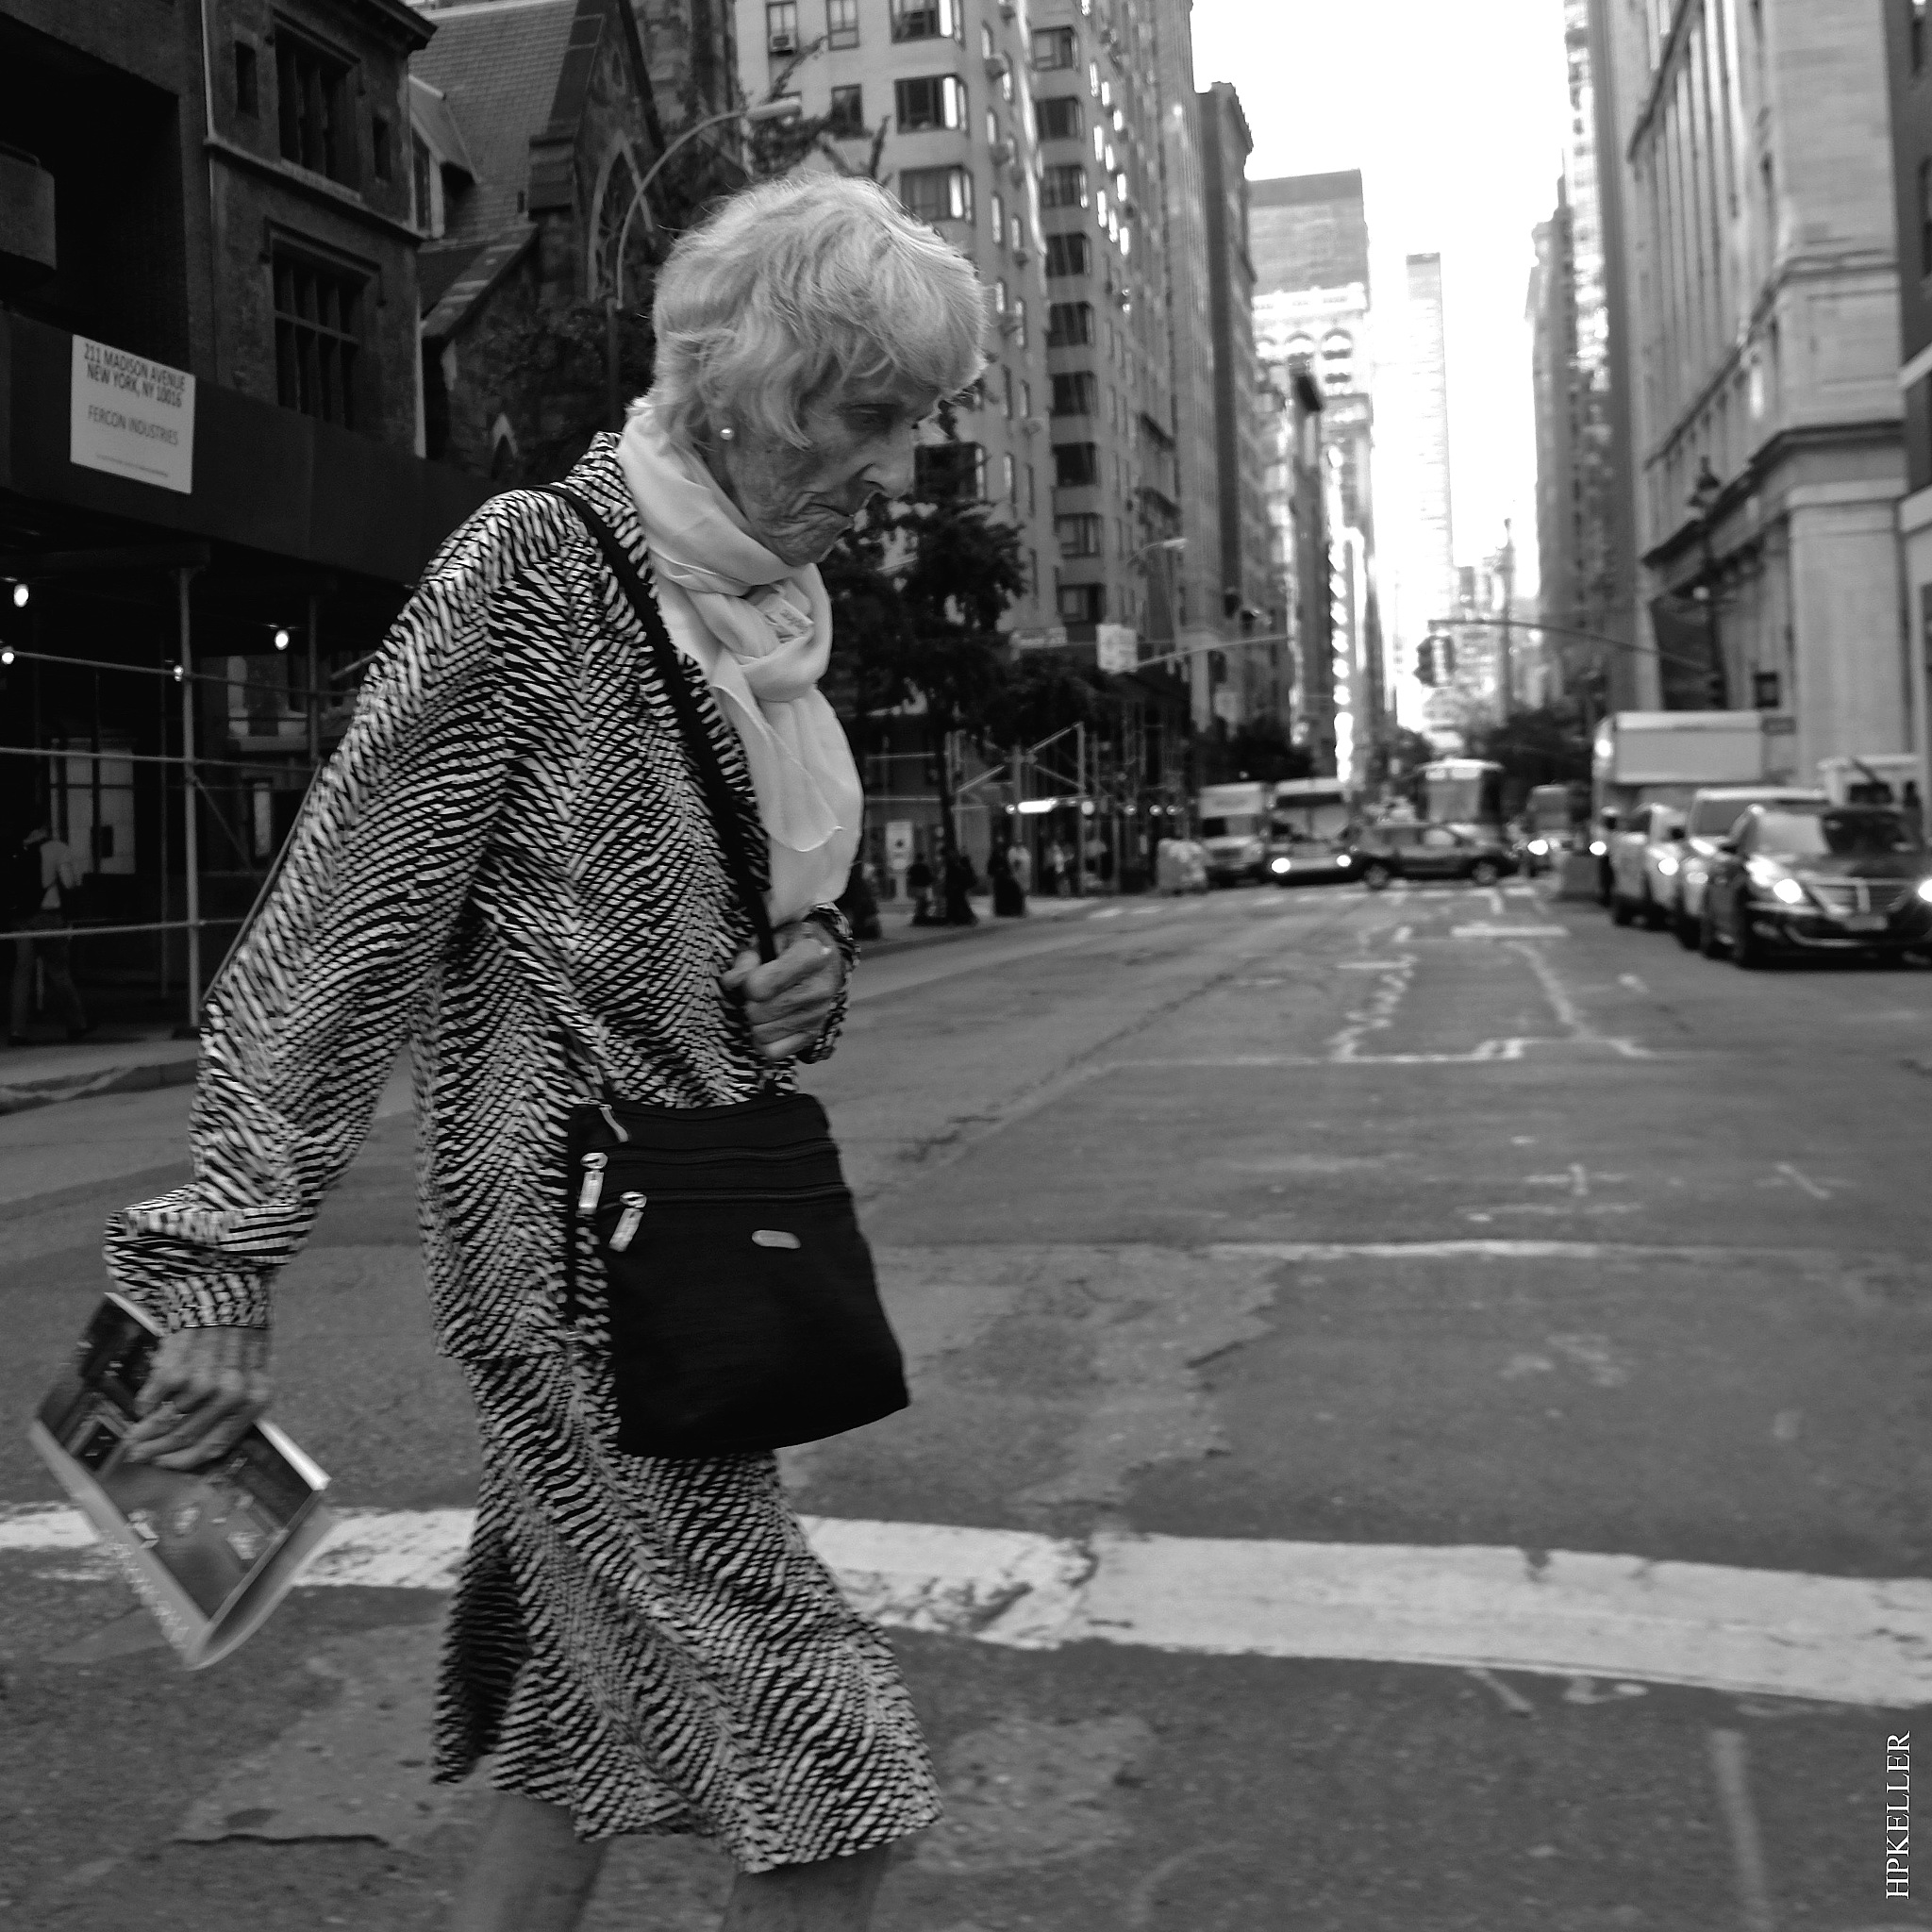 Some days ago in NYC, ...thoughtful encounters. by Hans-Peter Keller